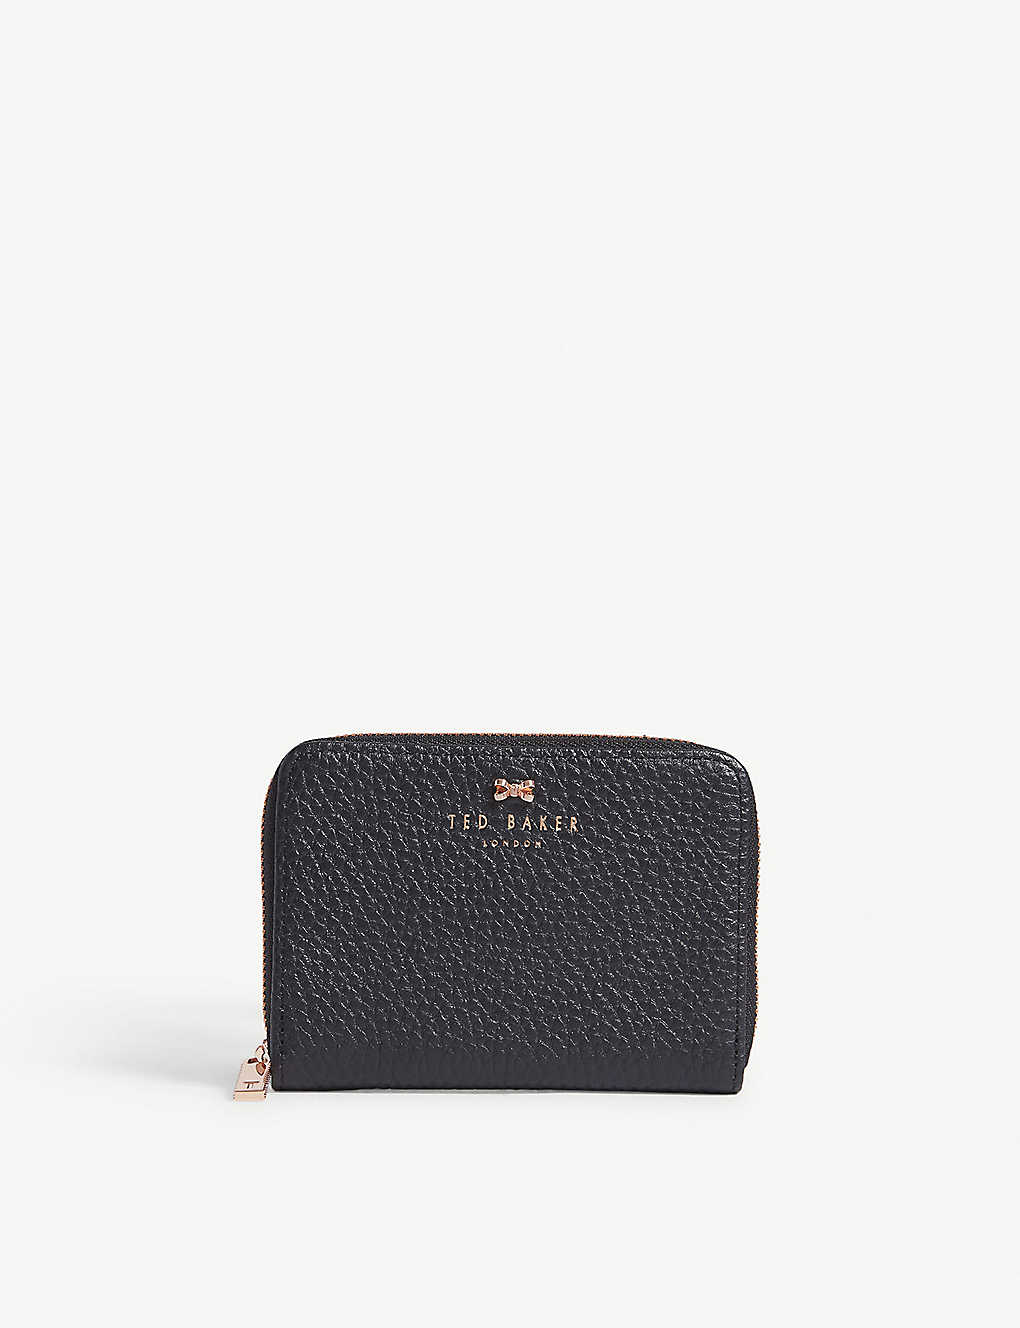 512739b2b19 TED BAKER - Plie textured leather small zip purse | Selfridges.com